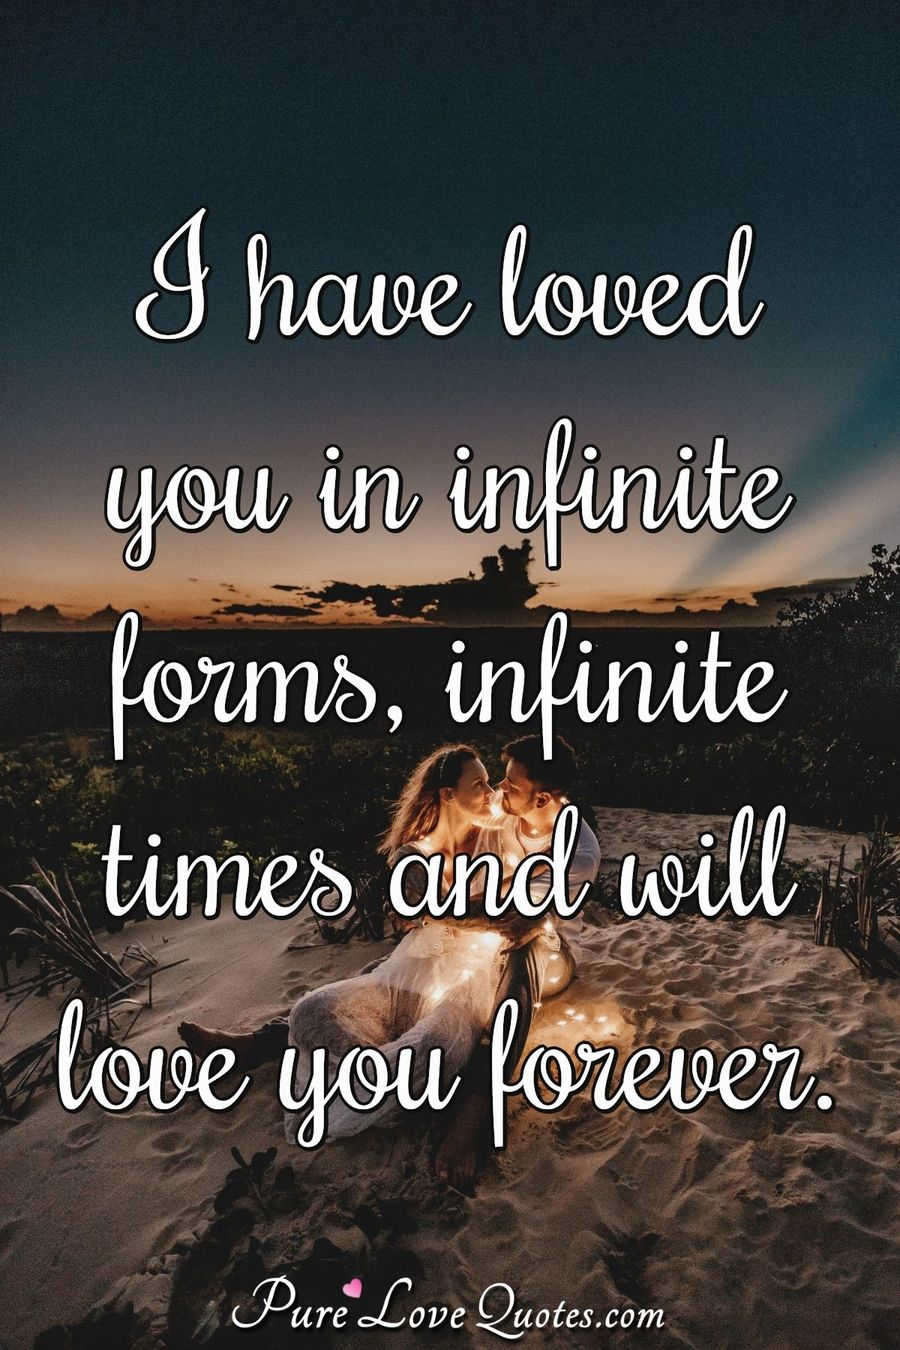 I have loved you in infinite forms, infinite times and will love you forever.